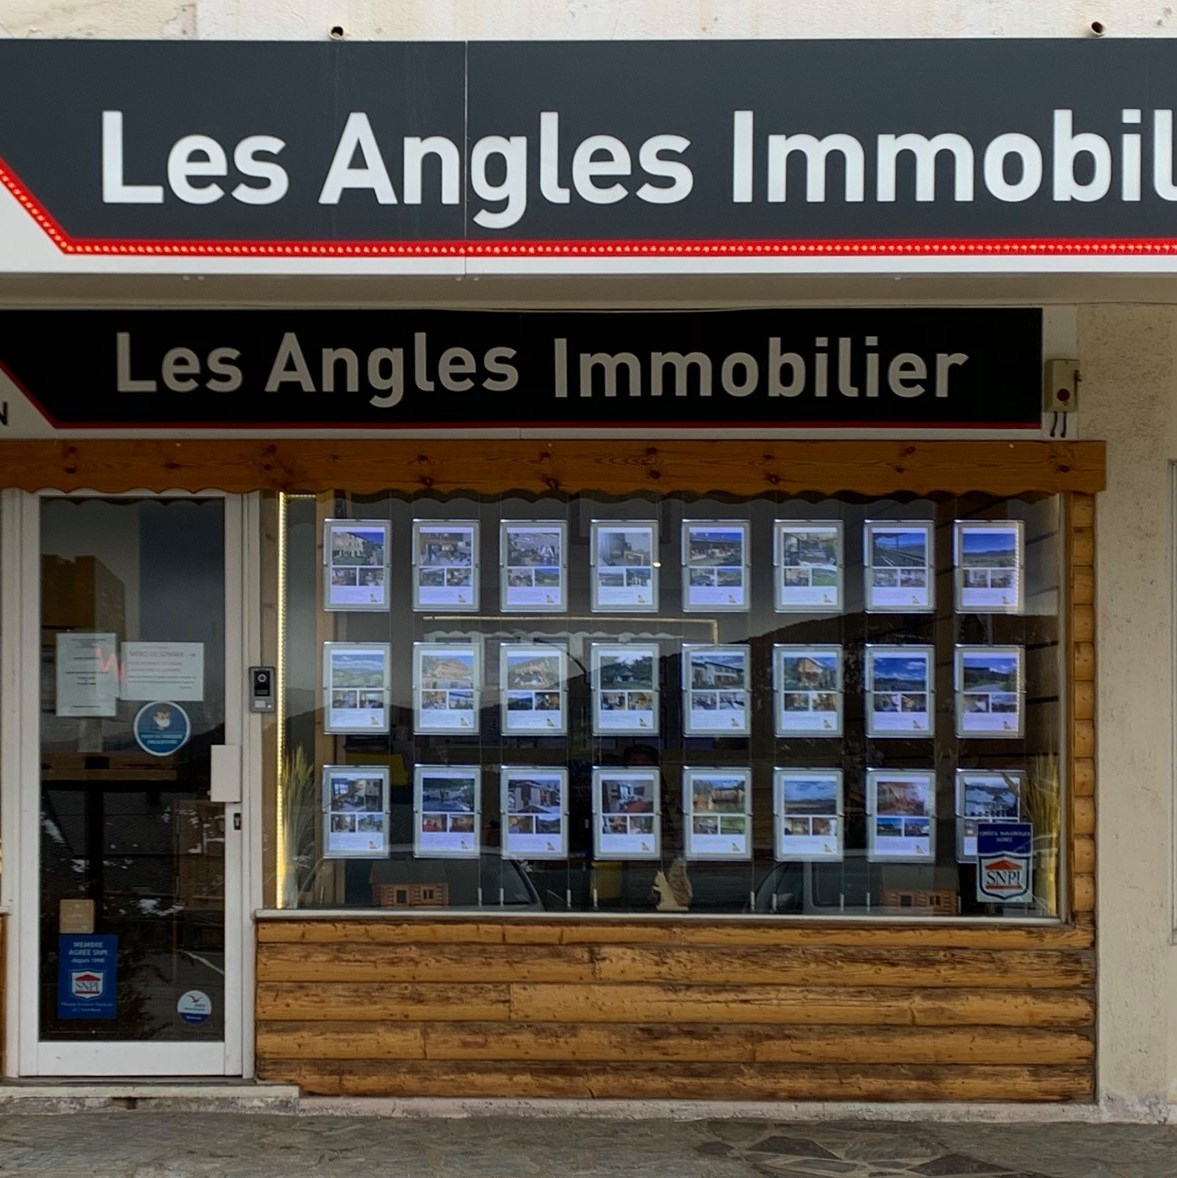 AGENCE IMMOBILIERE LES ANGLES IMMOBILIER © les angles